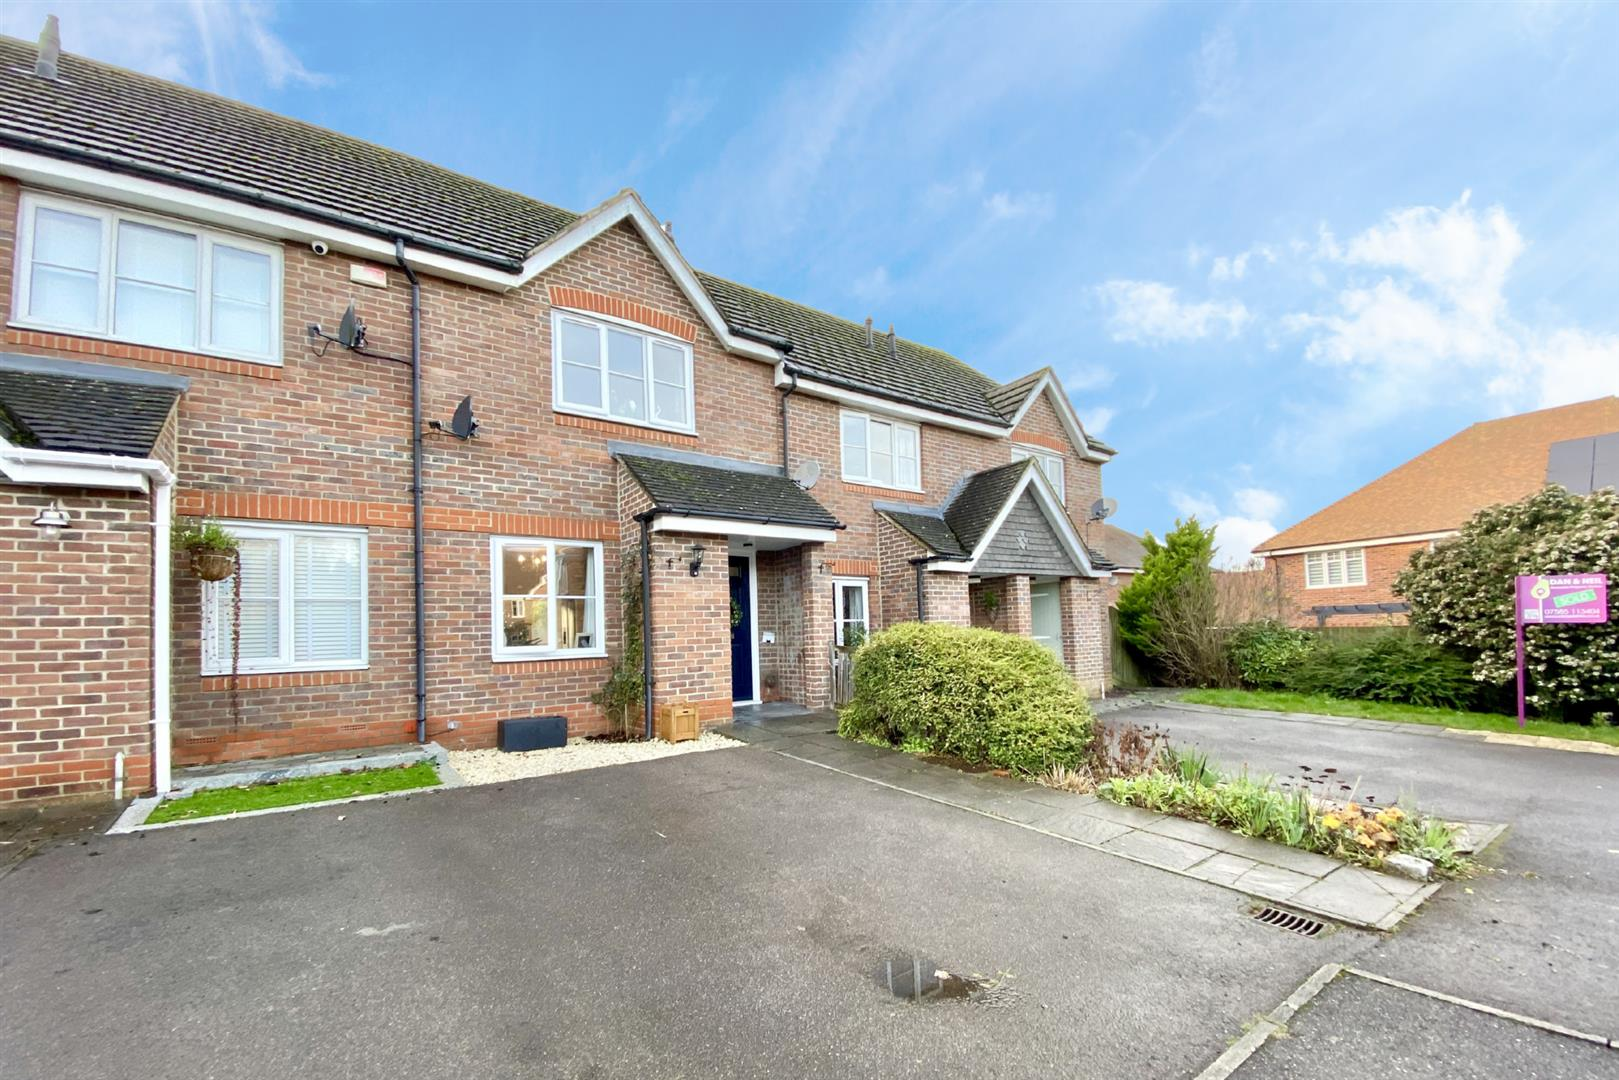 2 bed terraced for sale in Three Mile Cross  - Property Image 1